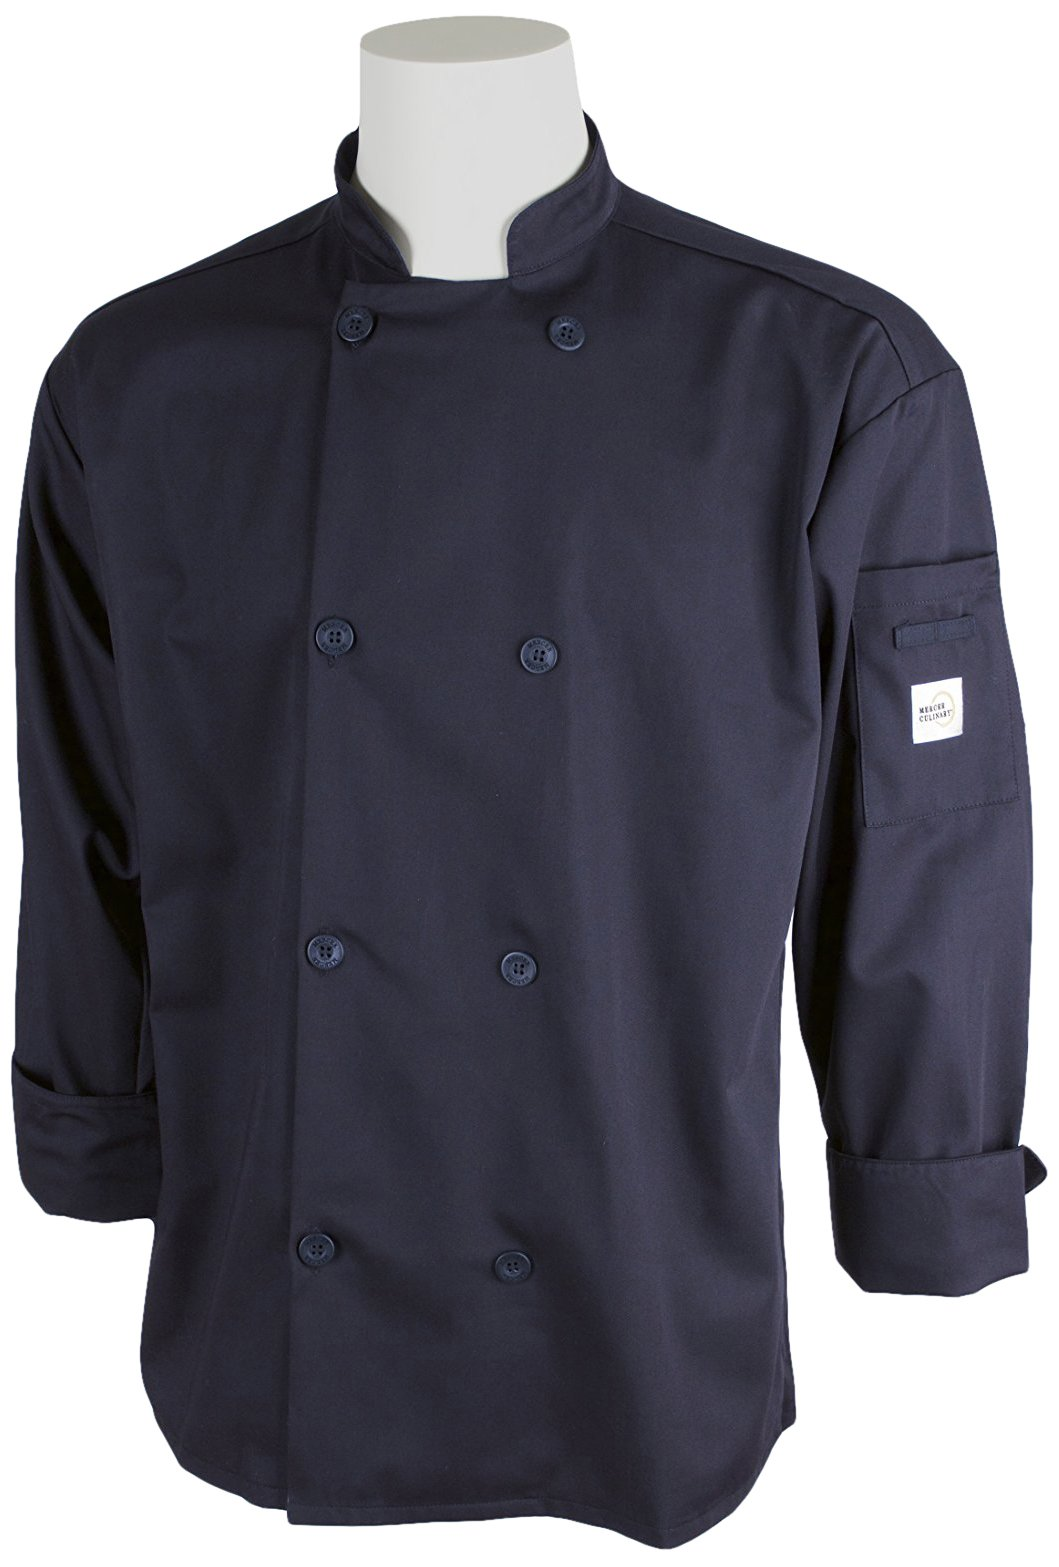 Mercer Culinary M60010NBXS Millennia Men's Cook Jacket with Traditional Buttons, X-Small, Navy Blue